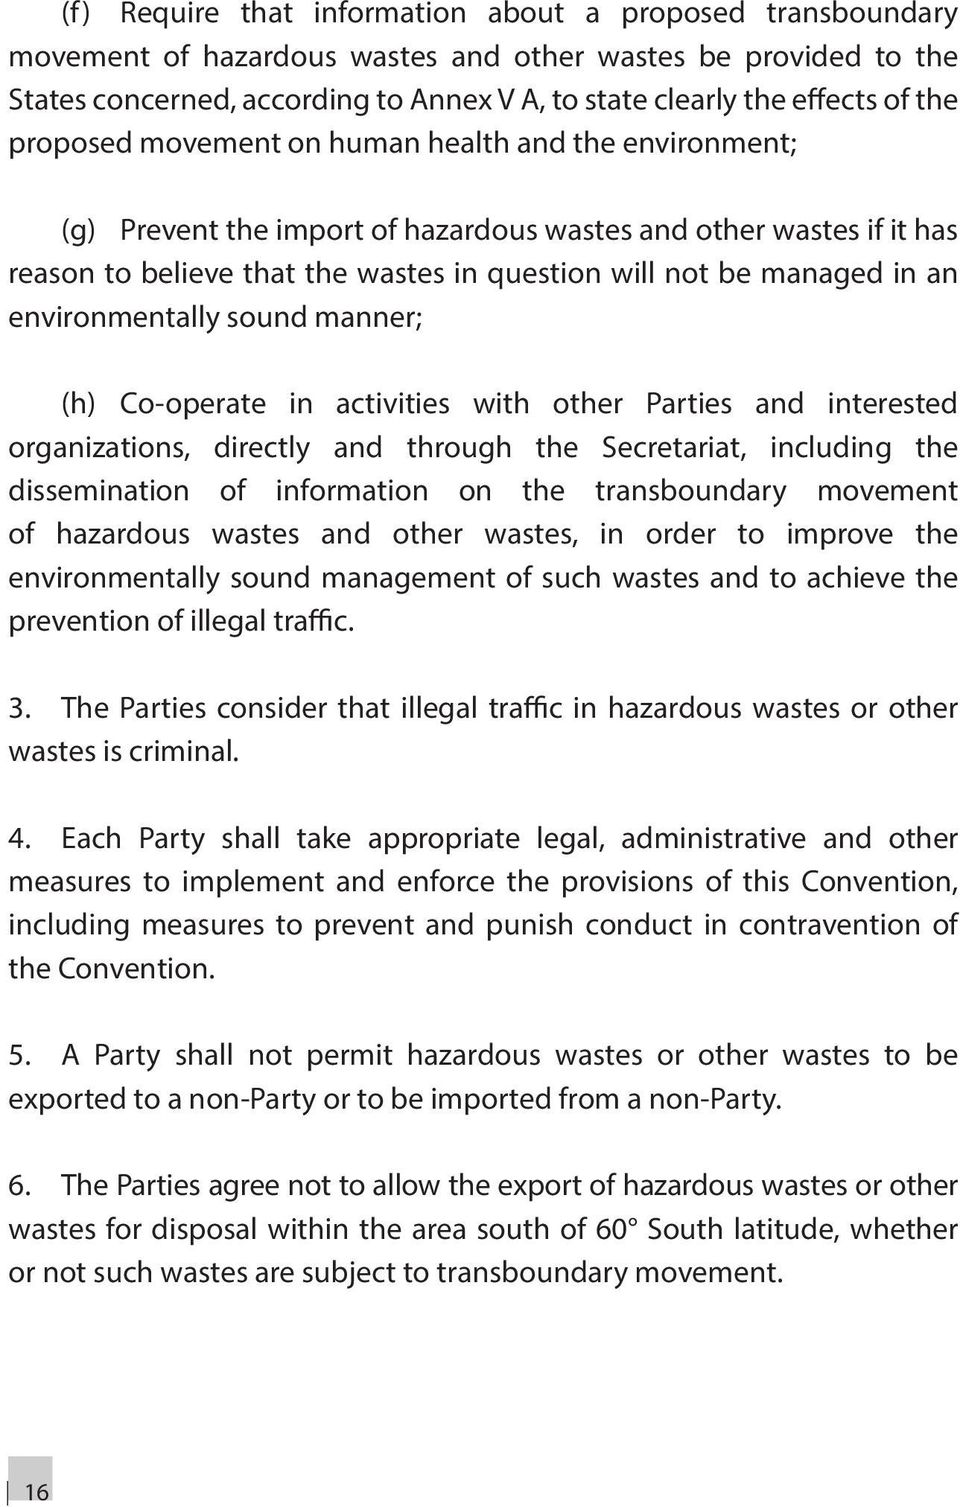 an environmentally sound manner; (h) Co-operate in activities with other Parties and interested organizations, directly and through the Secretariat, including the dissemination of information on the